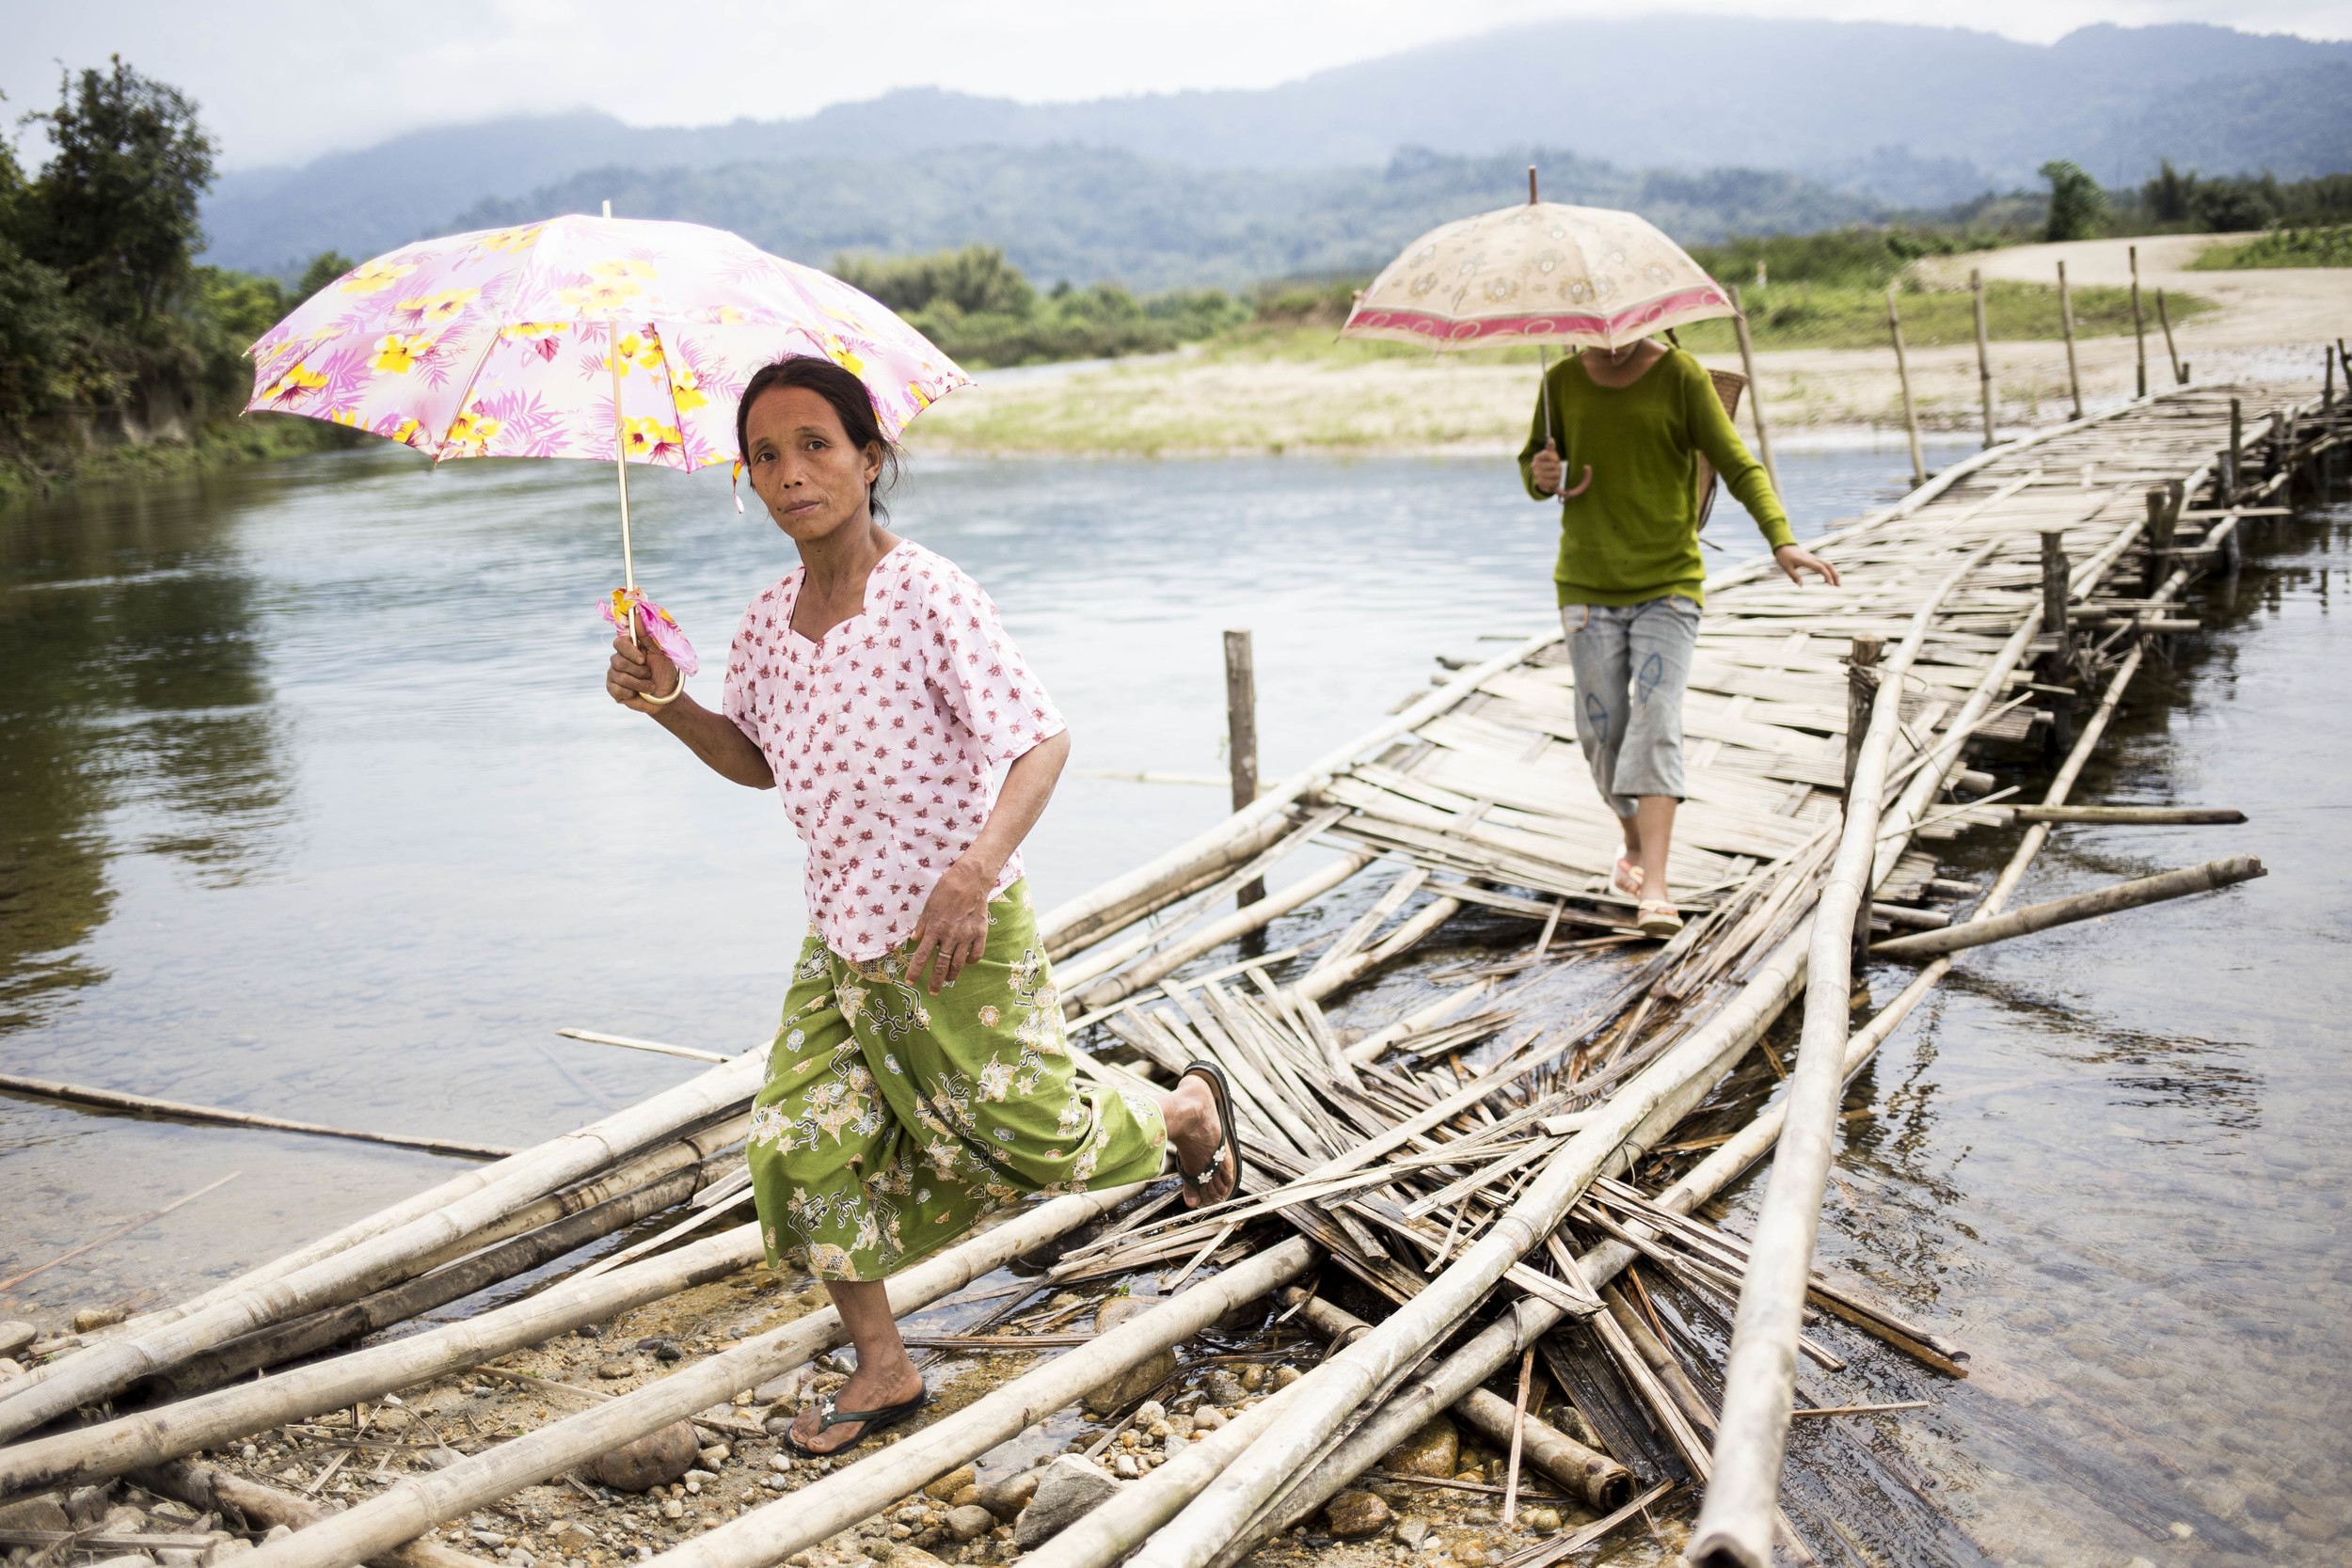 Majority of the villages is disconnected to the township by rivers. Some have bridges, but are oftern falling apart. Photo by Ann Wang